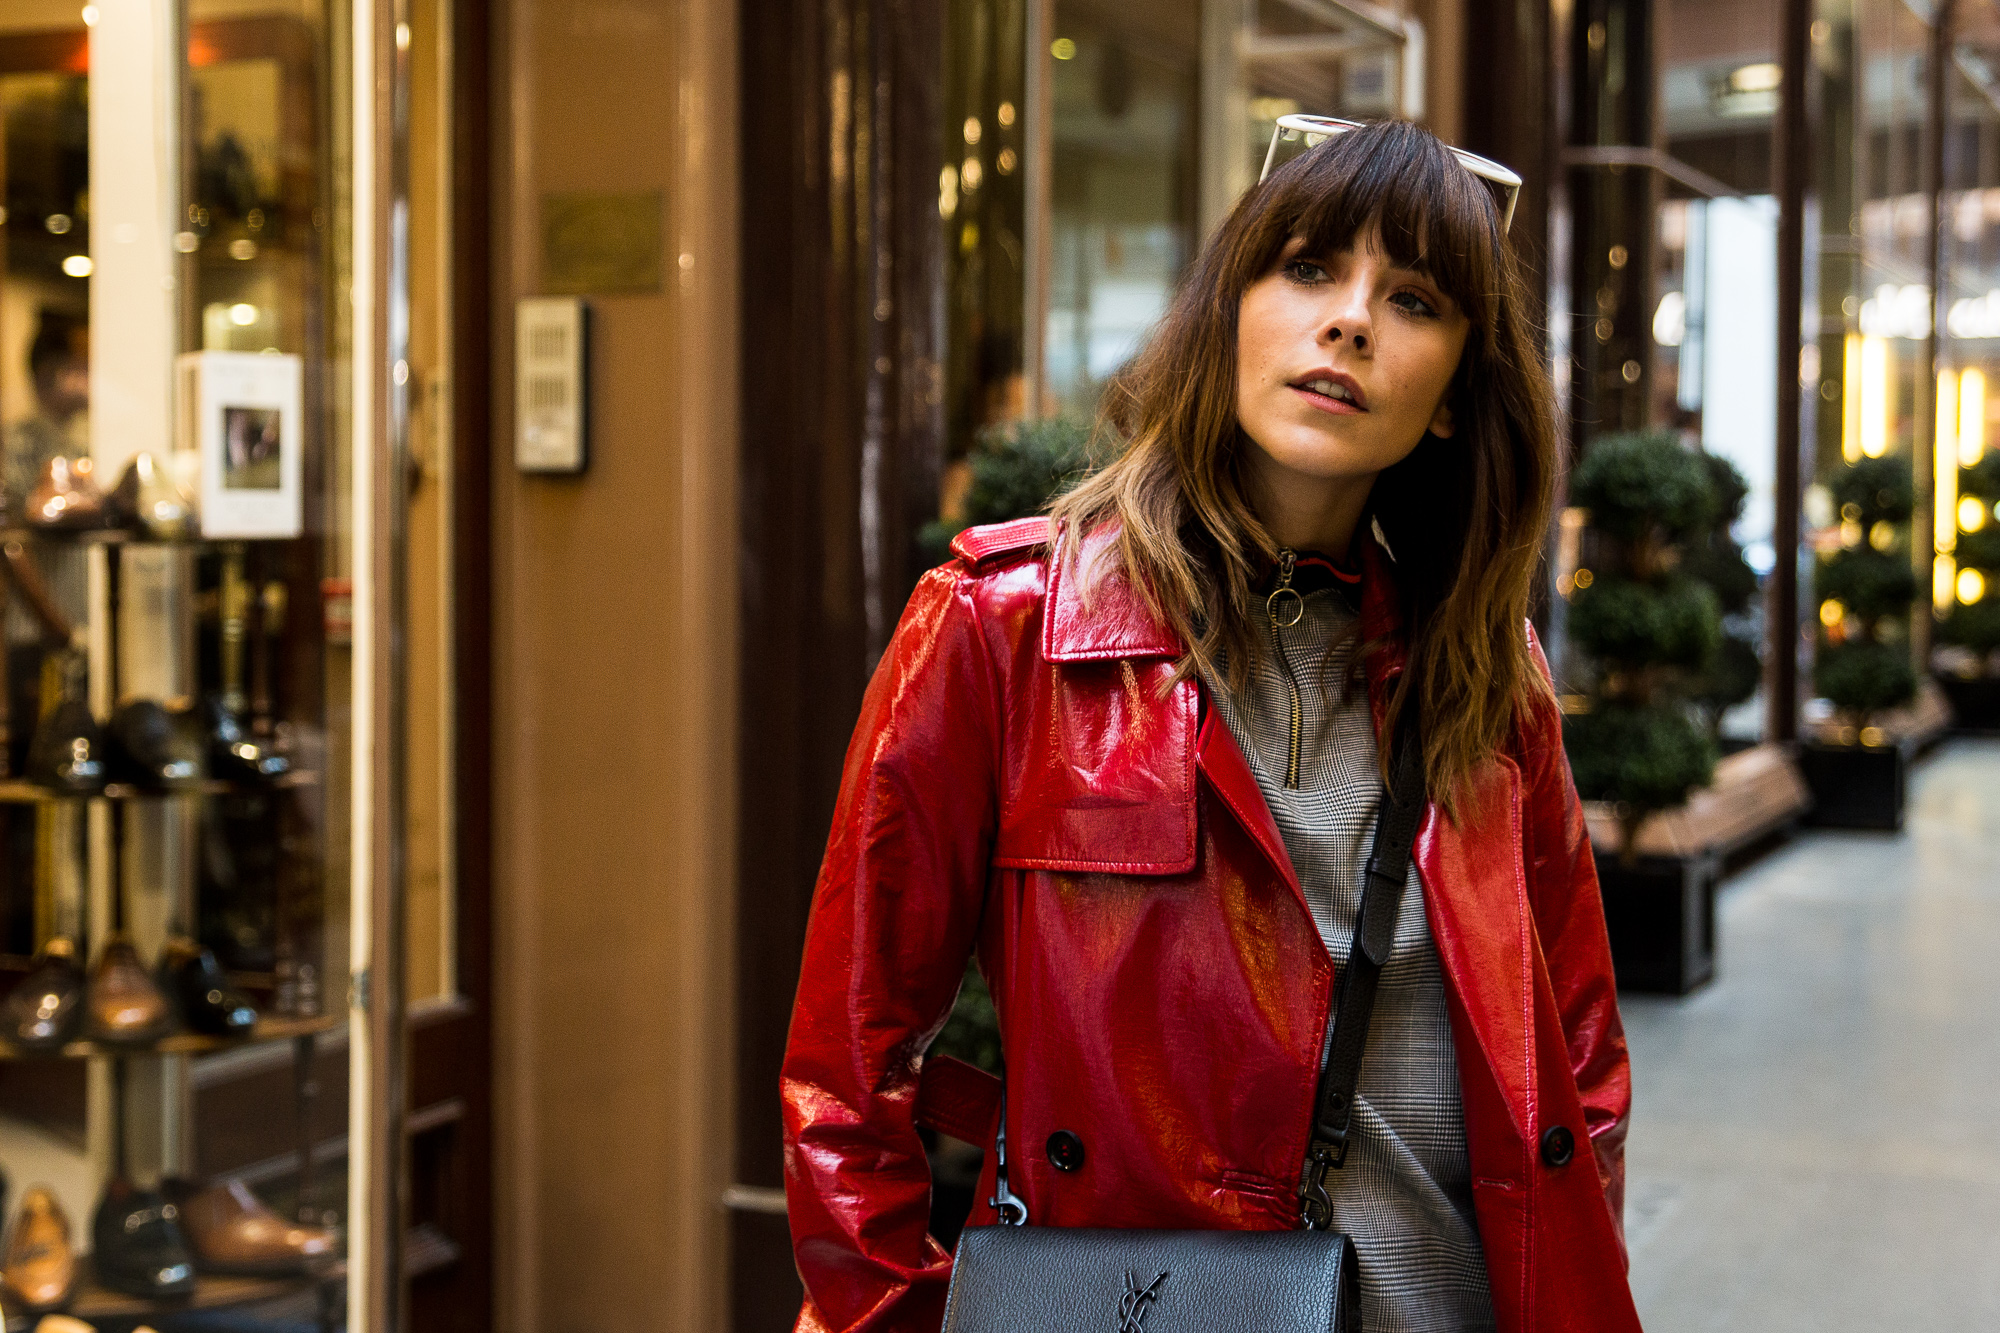 HOW TO STYLE RED FOR AUTUMN WINTER